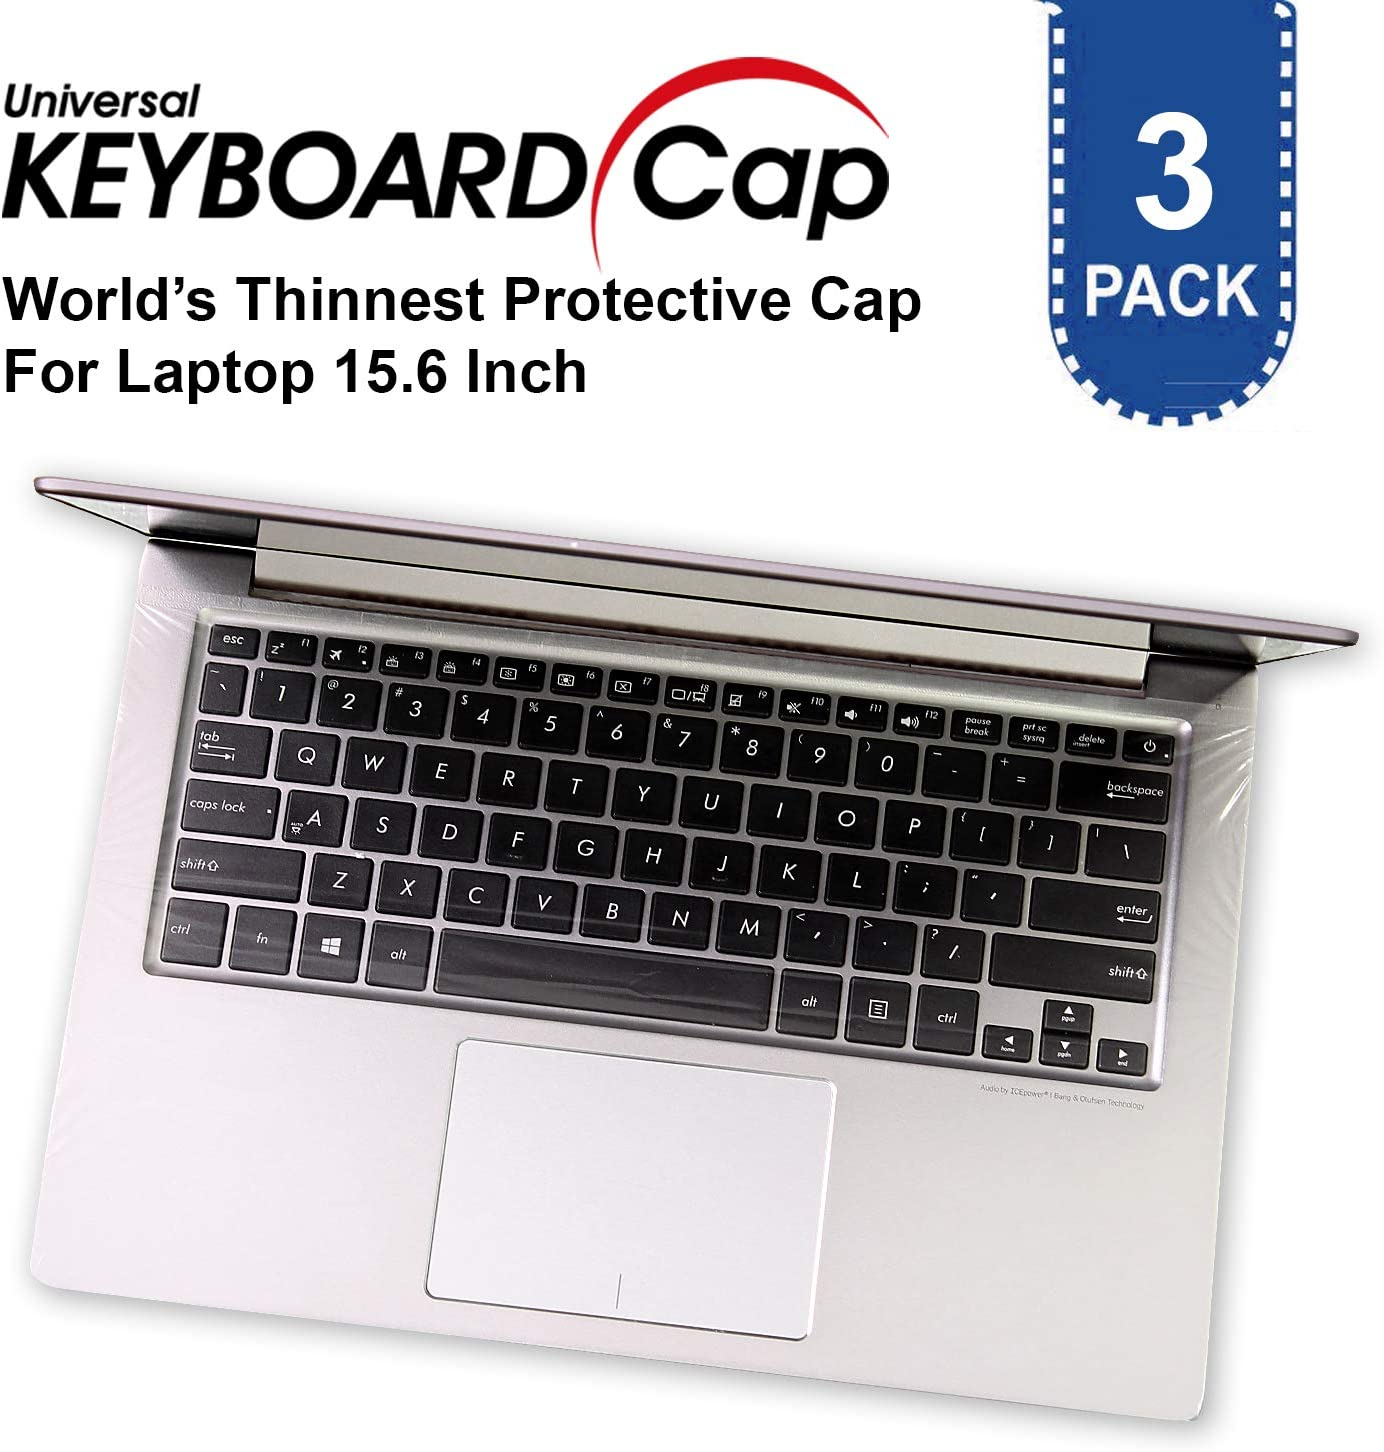 Fully Covered Flat Style Universal 0.025mm Wipeable Superb Tactile Feeling Waterproof Anti-Dust Keyboard Cap Cover for Laptop 15.6 Inch Hospital/Dentist Use [3 Pack]